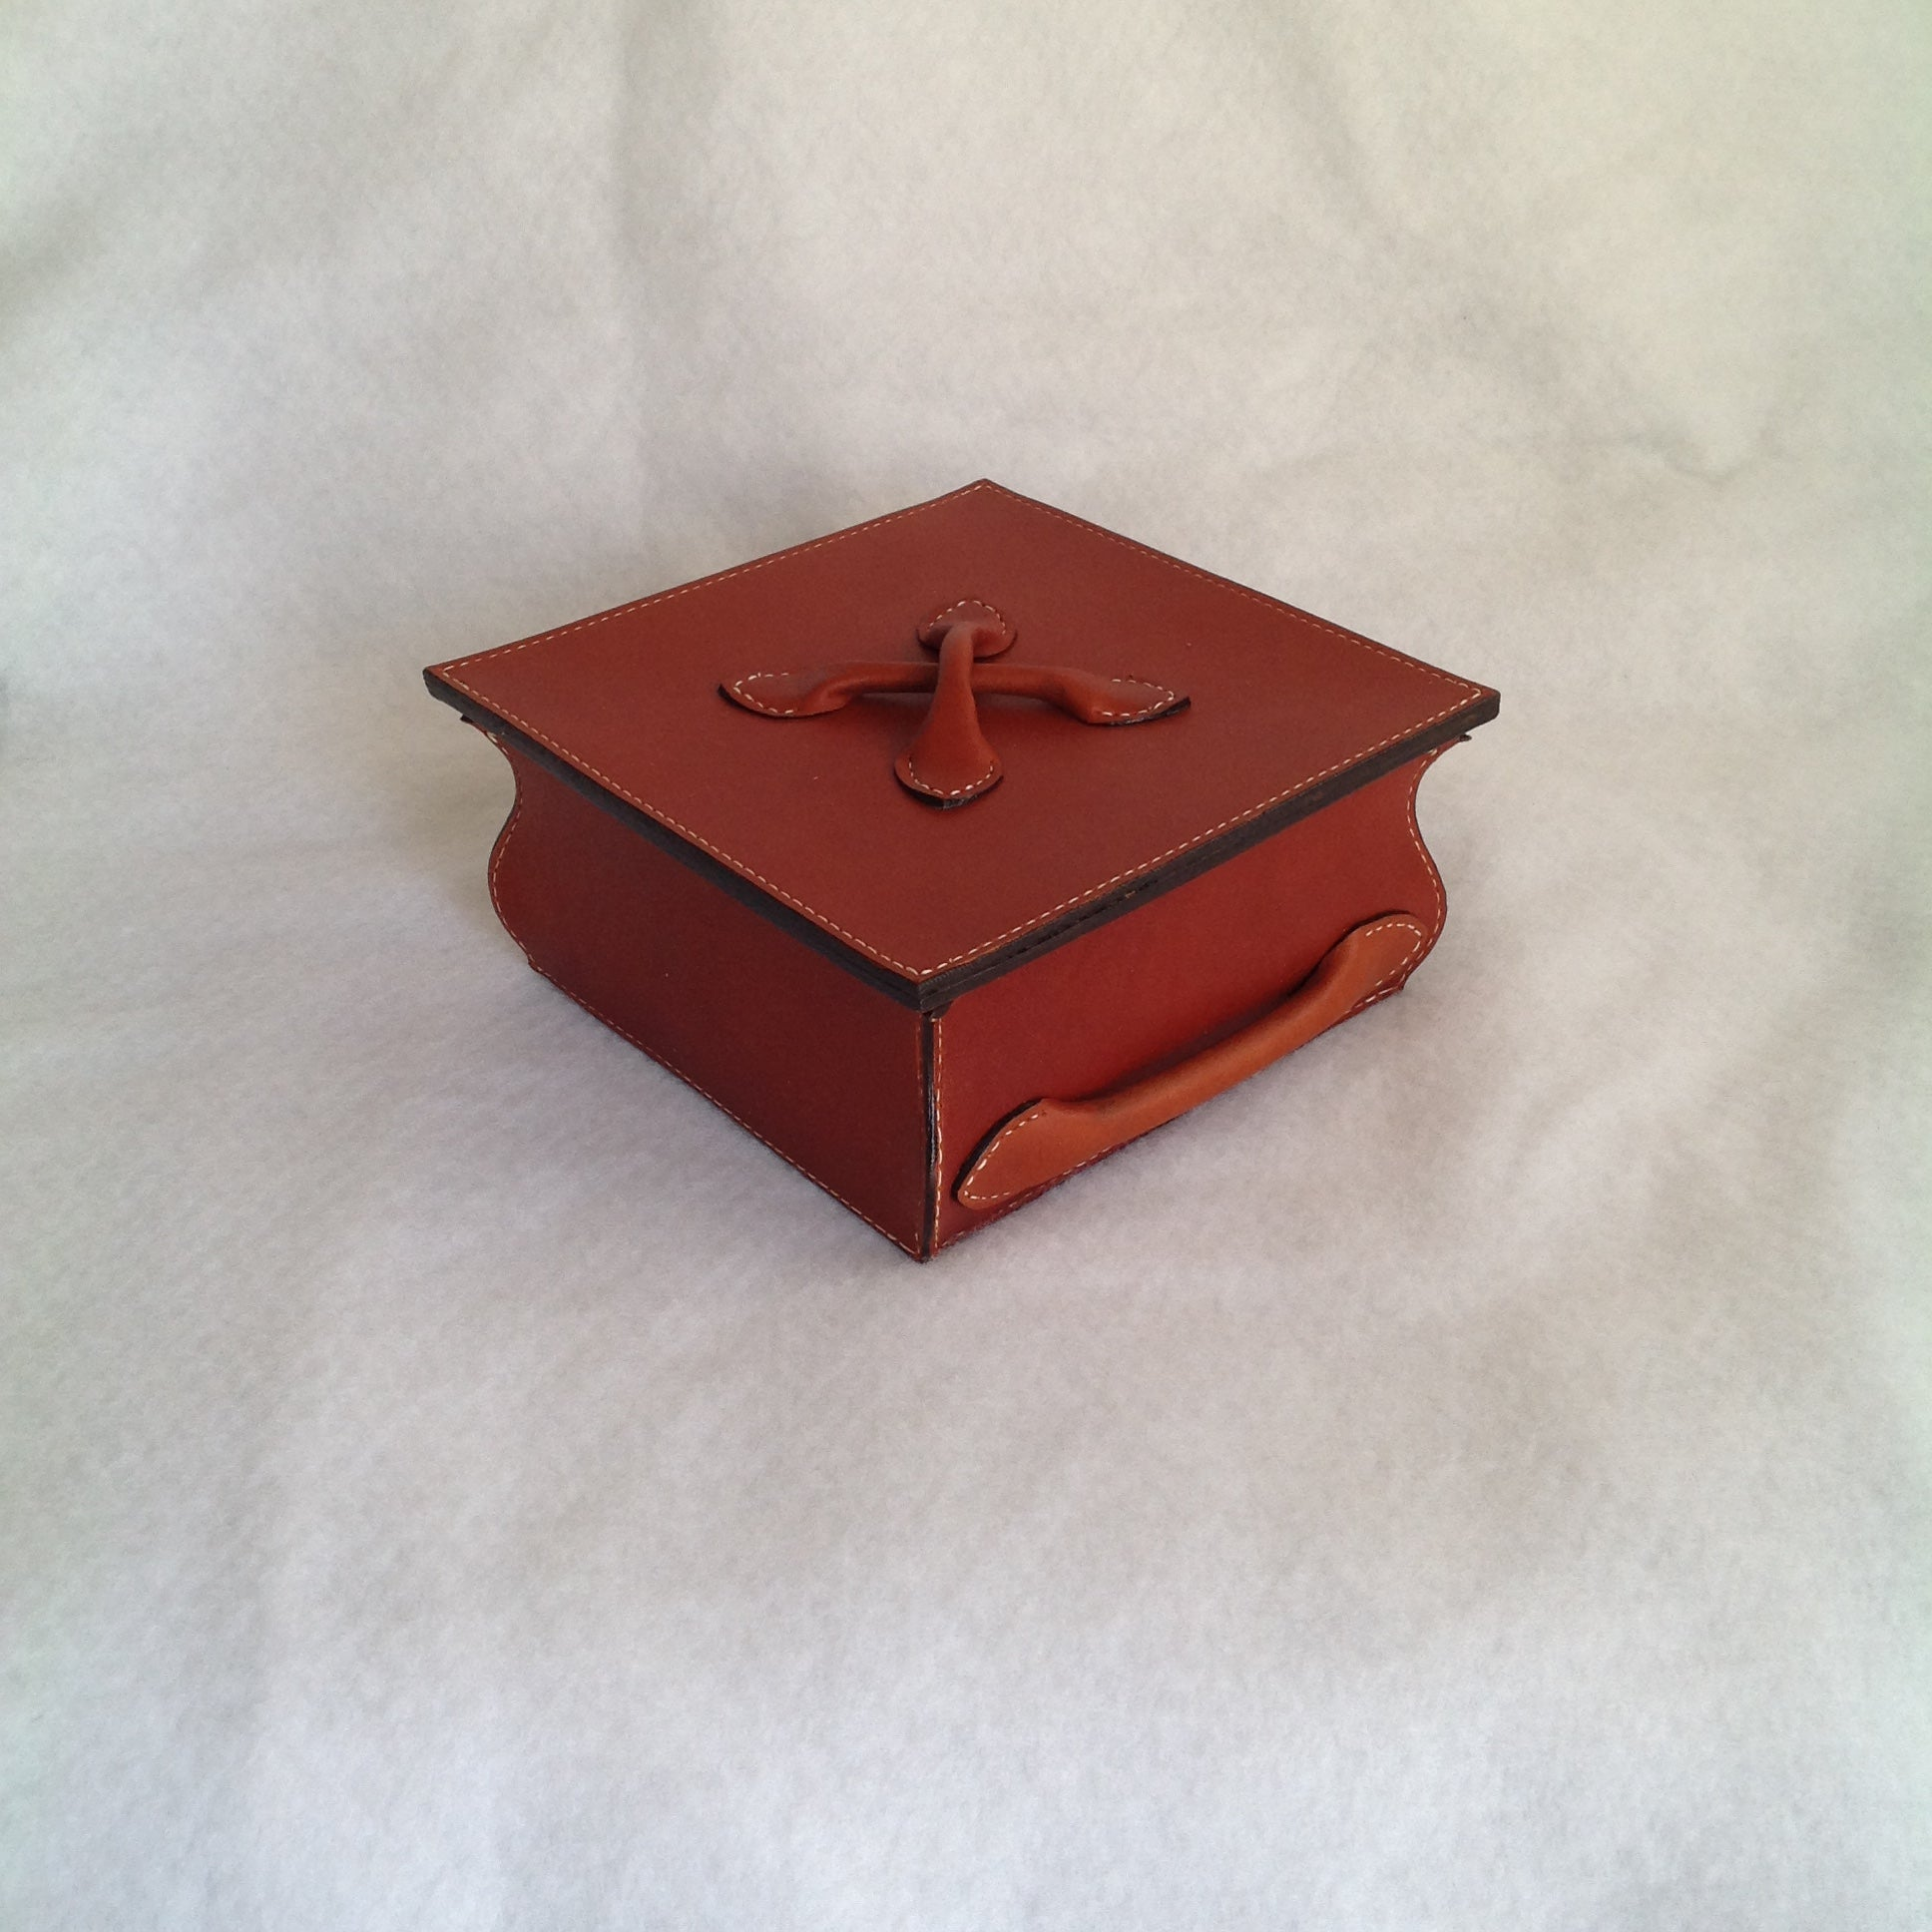 Medium Square Box with Lid Tan